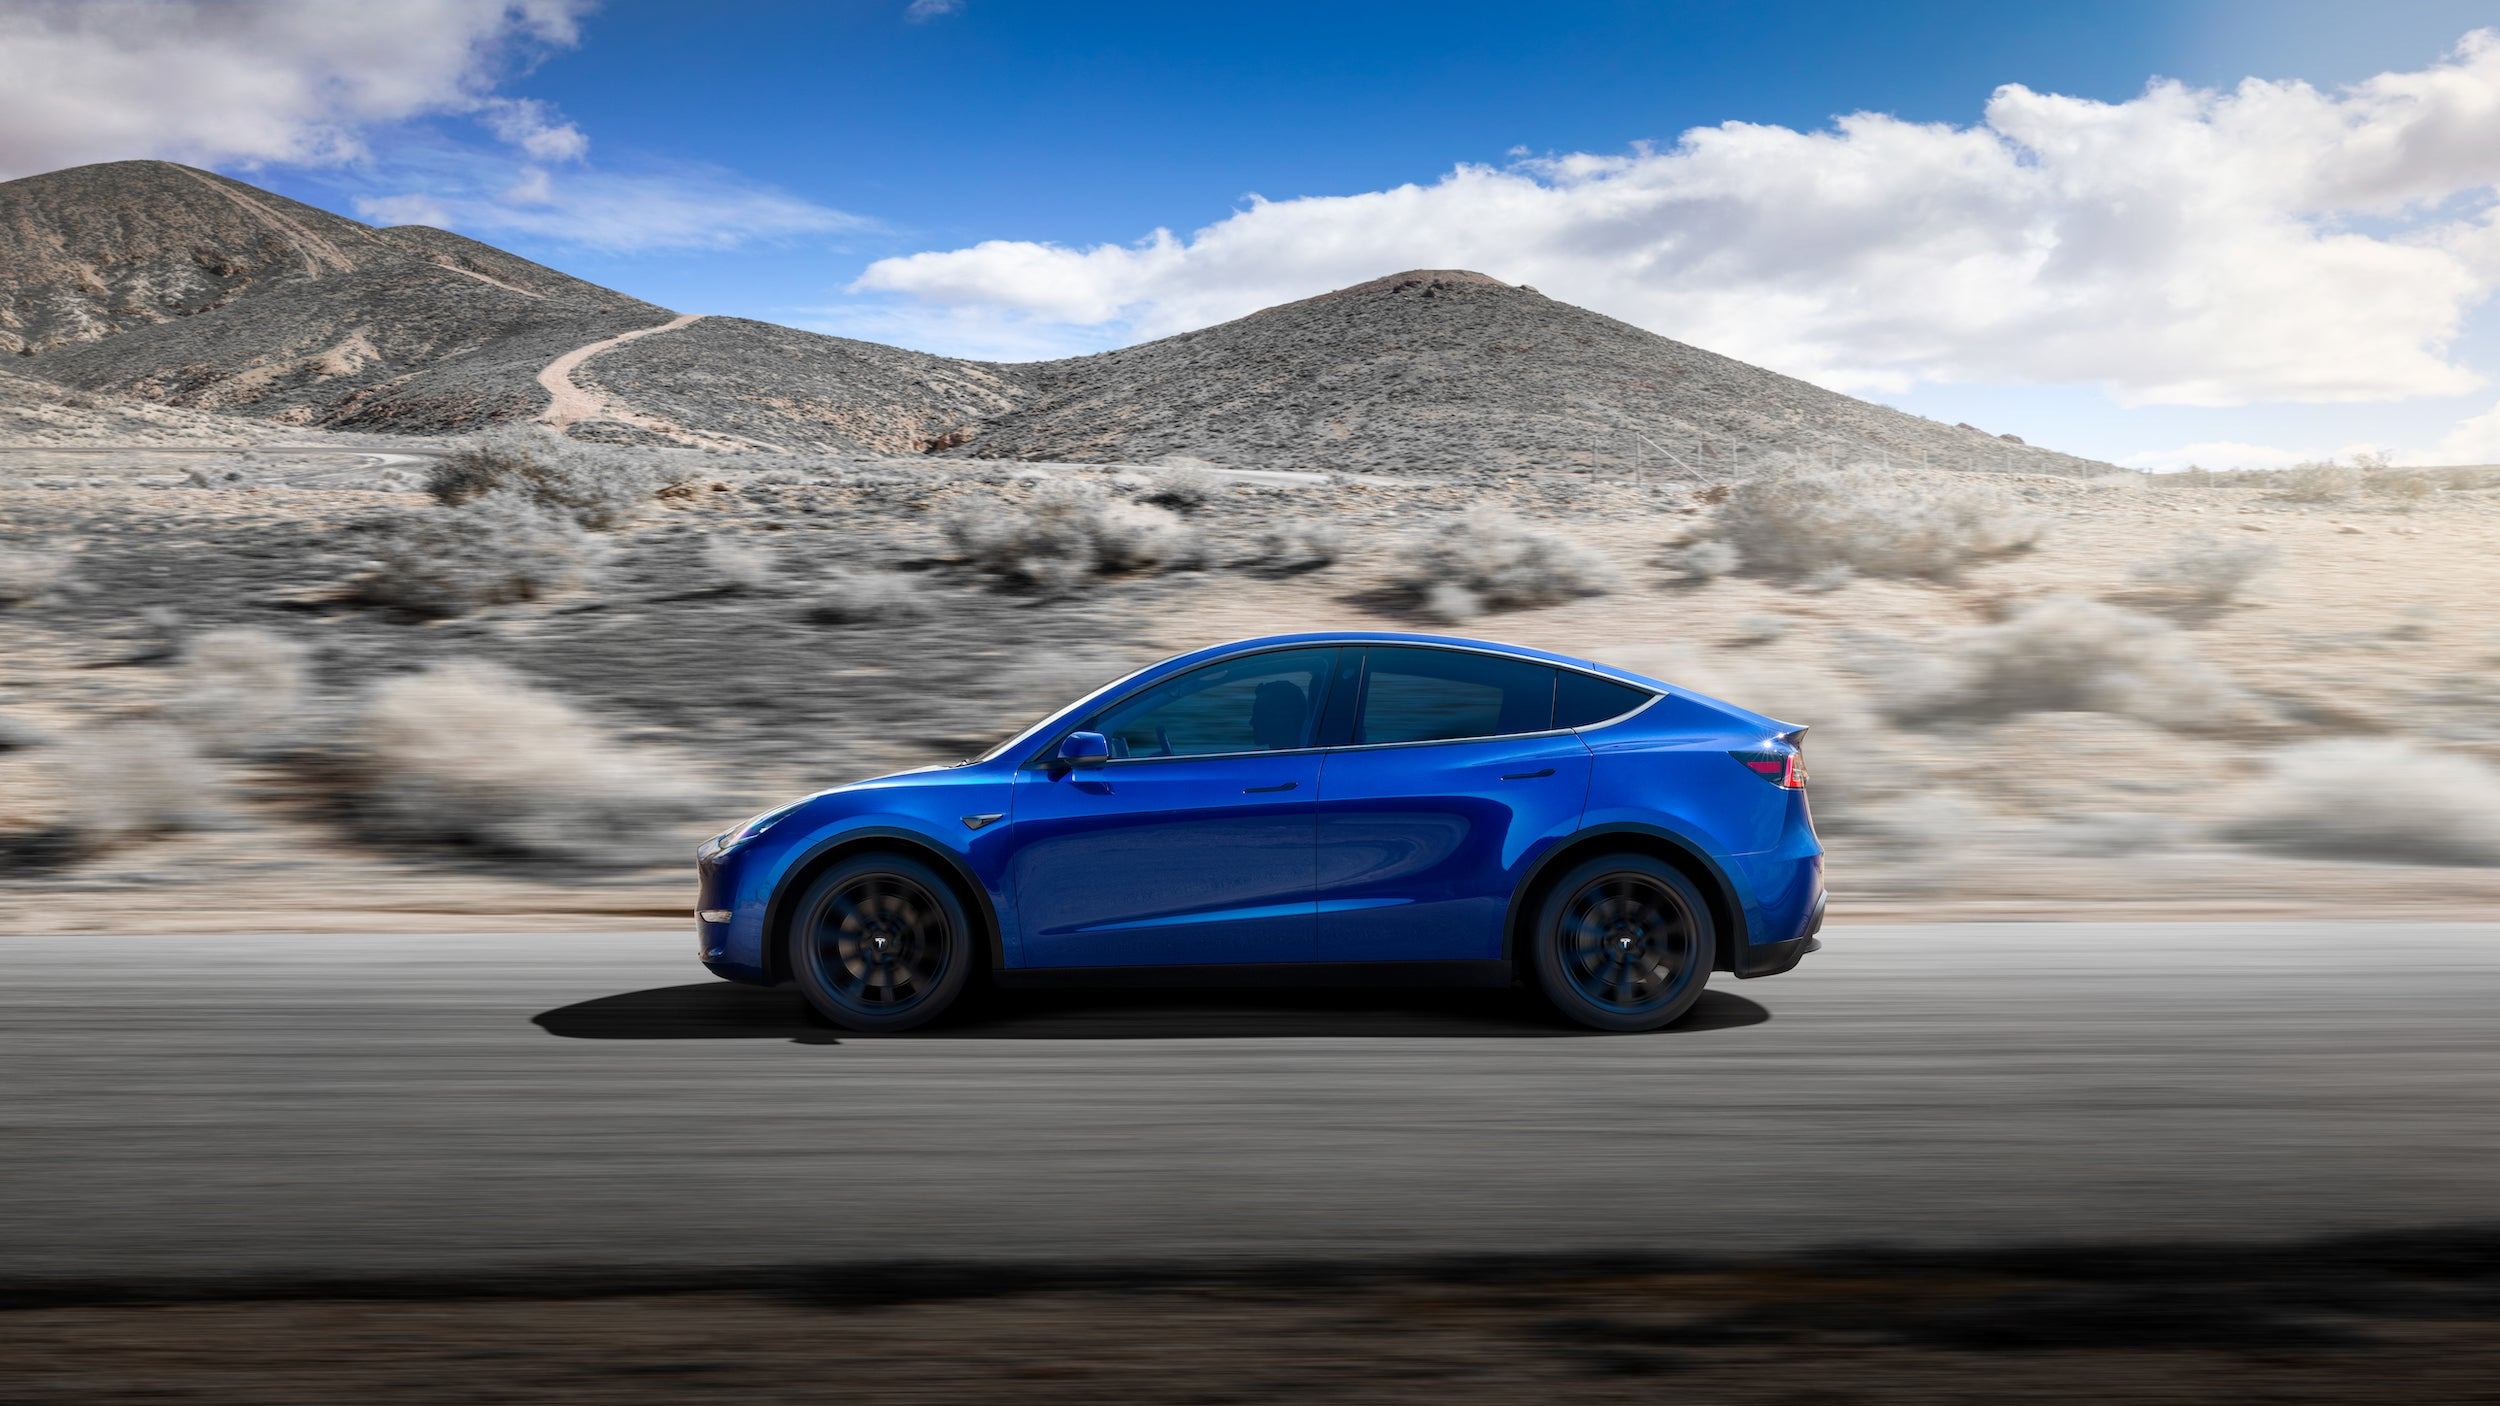 The First Tesla Model Y Deliveries Are on Track for Next Month | The Motley Fool